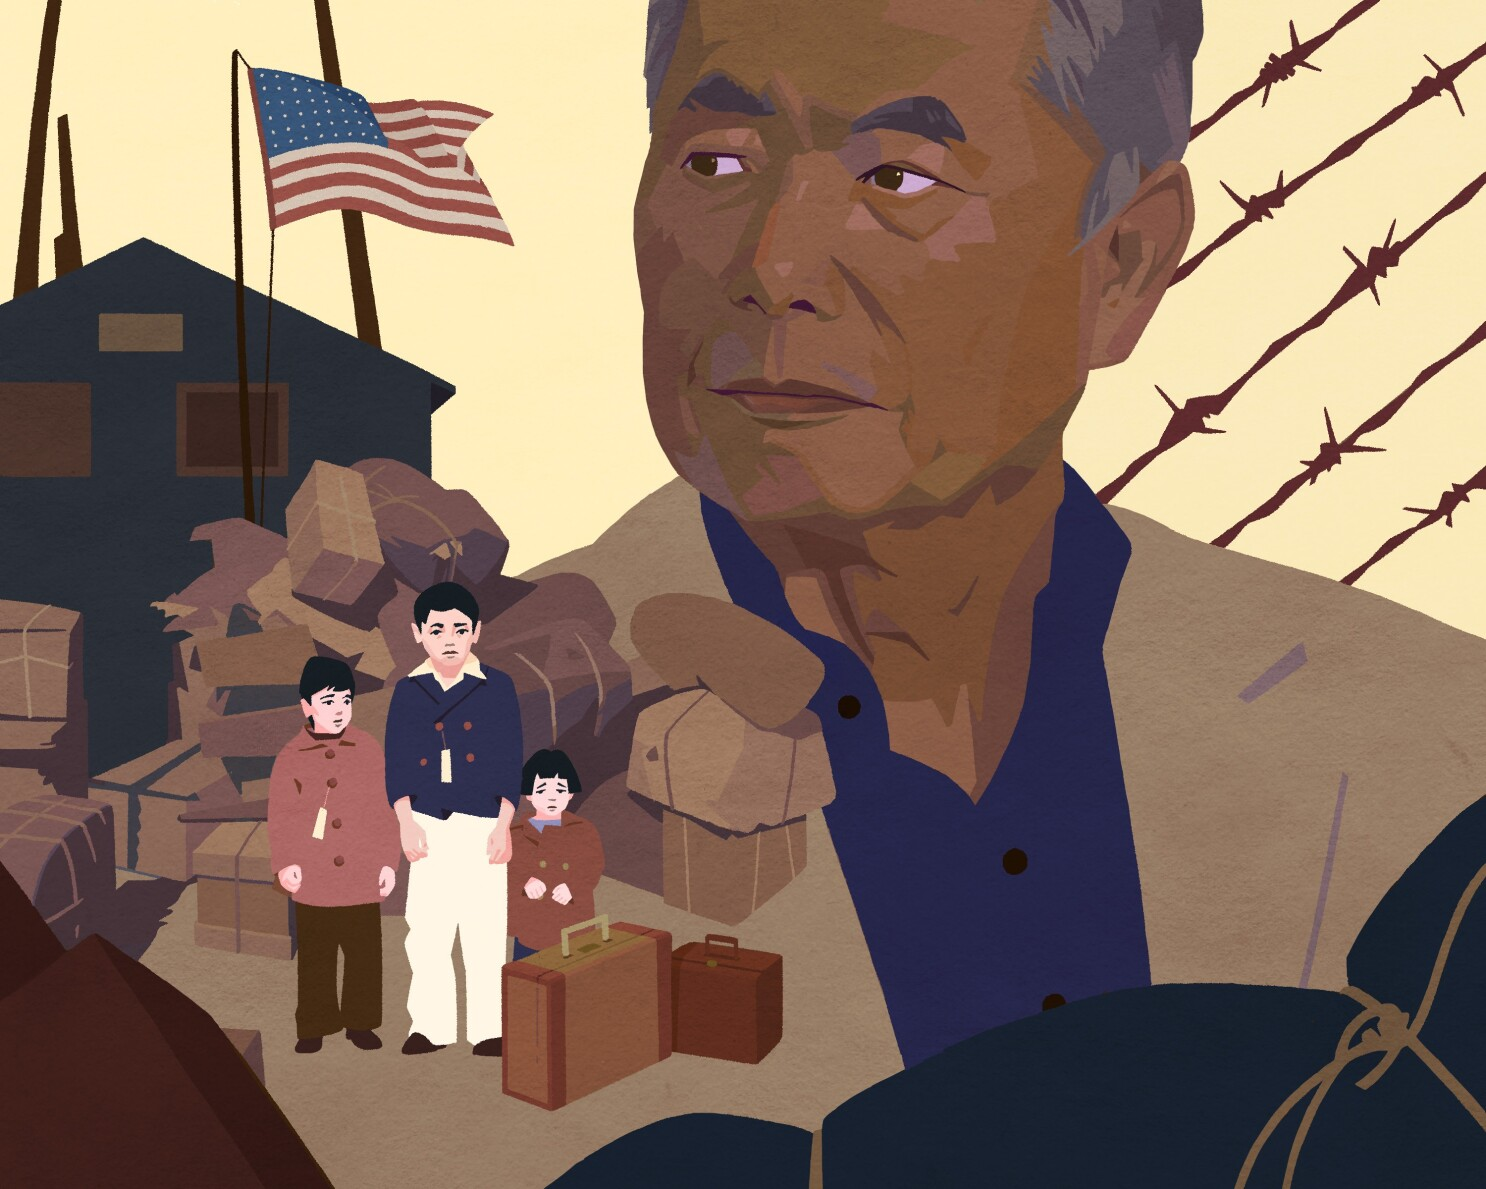 Readers react: Families interned, but Japanese American fighters served proudly